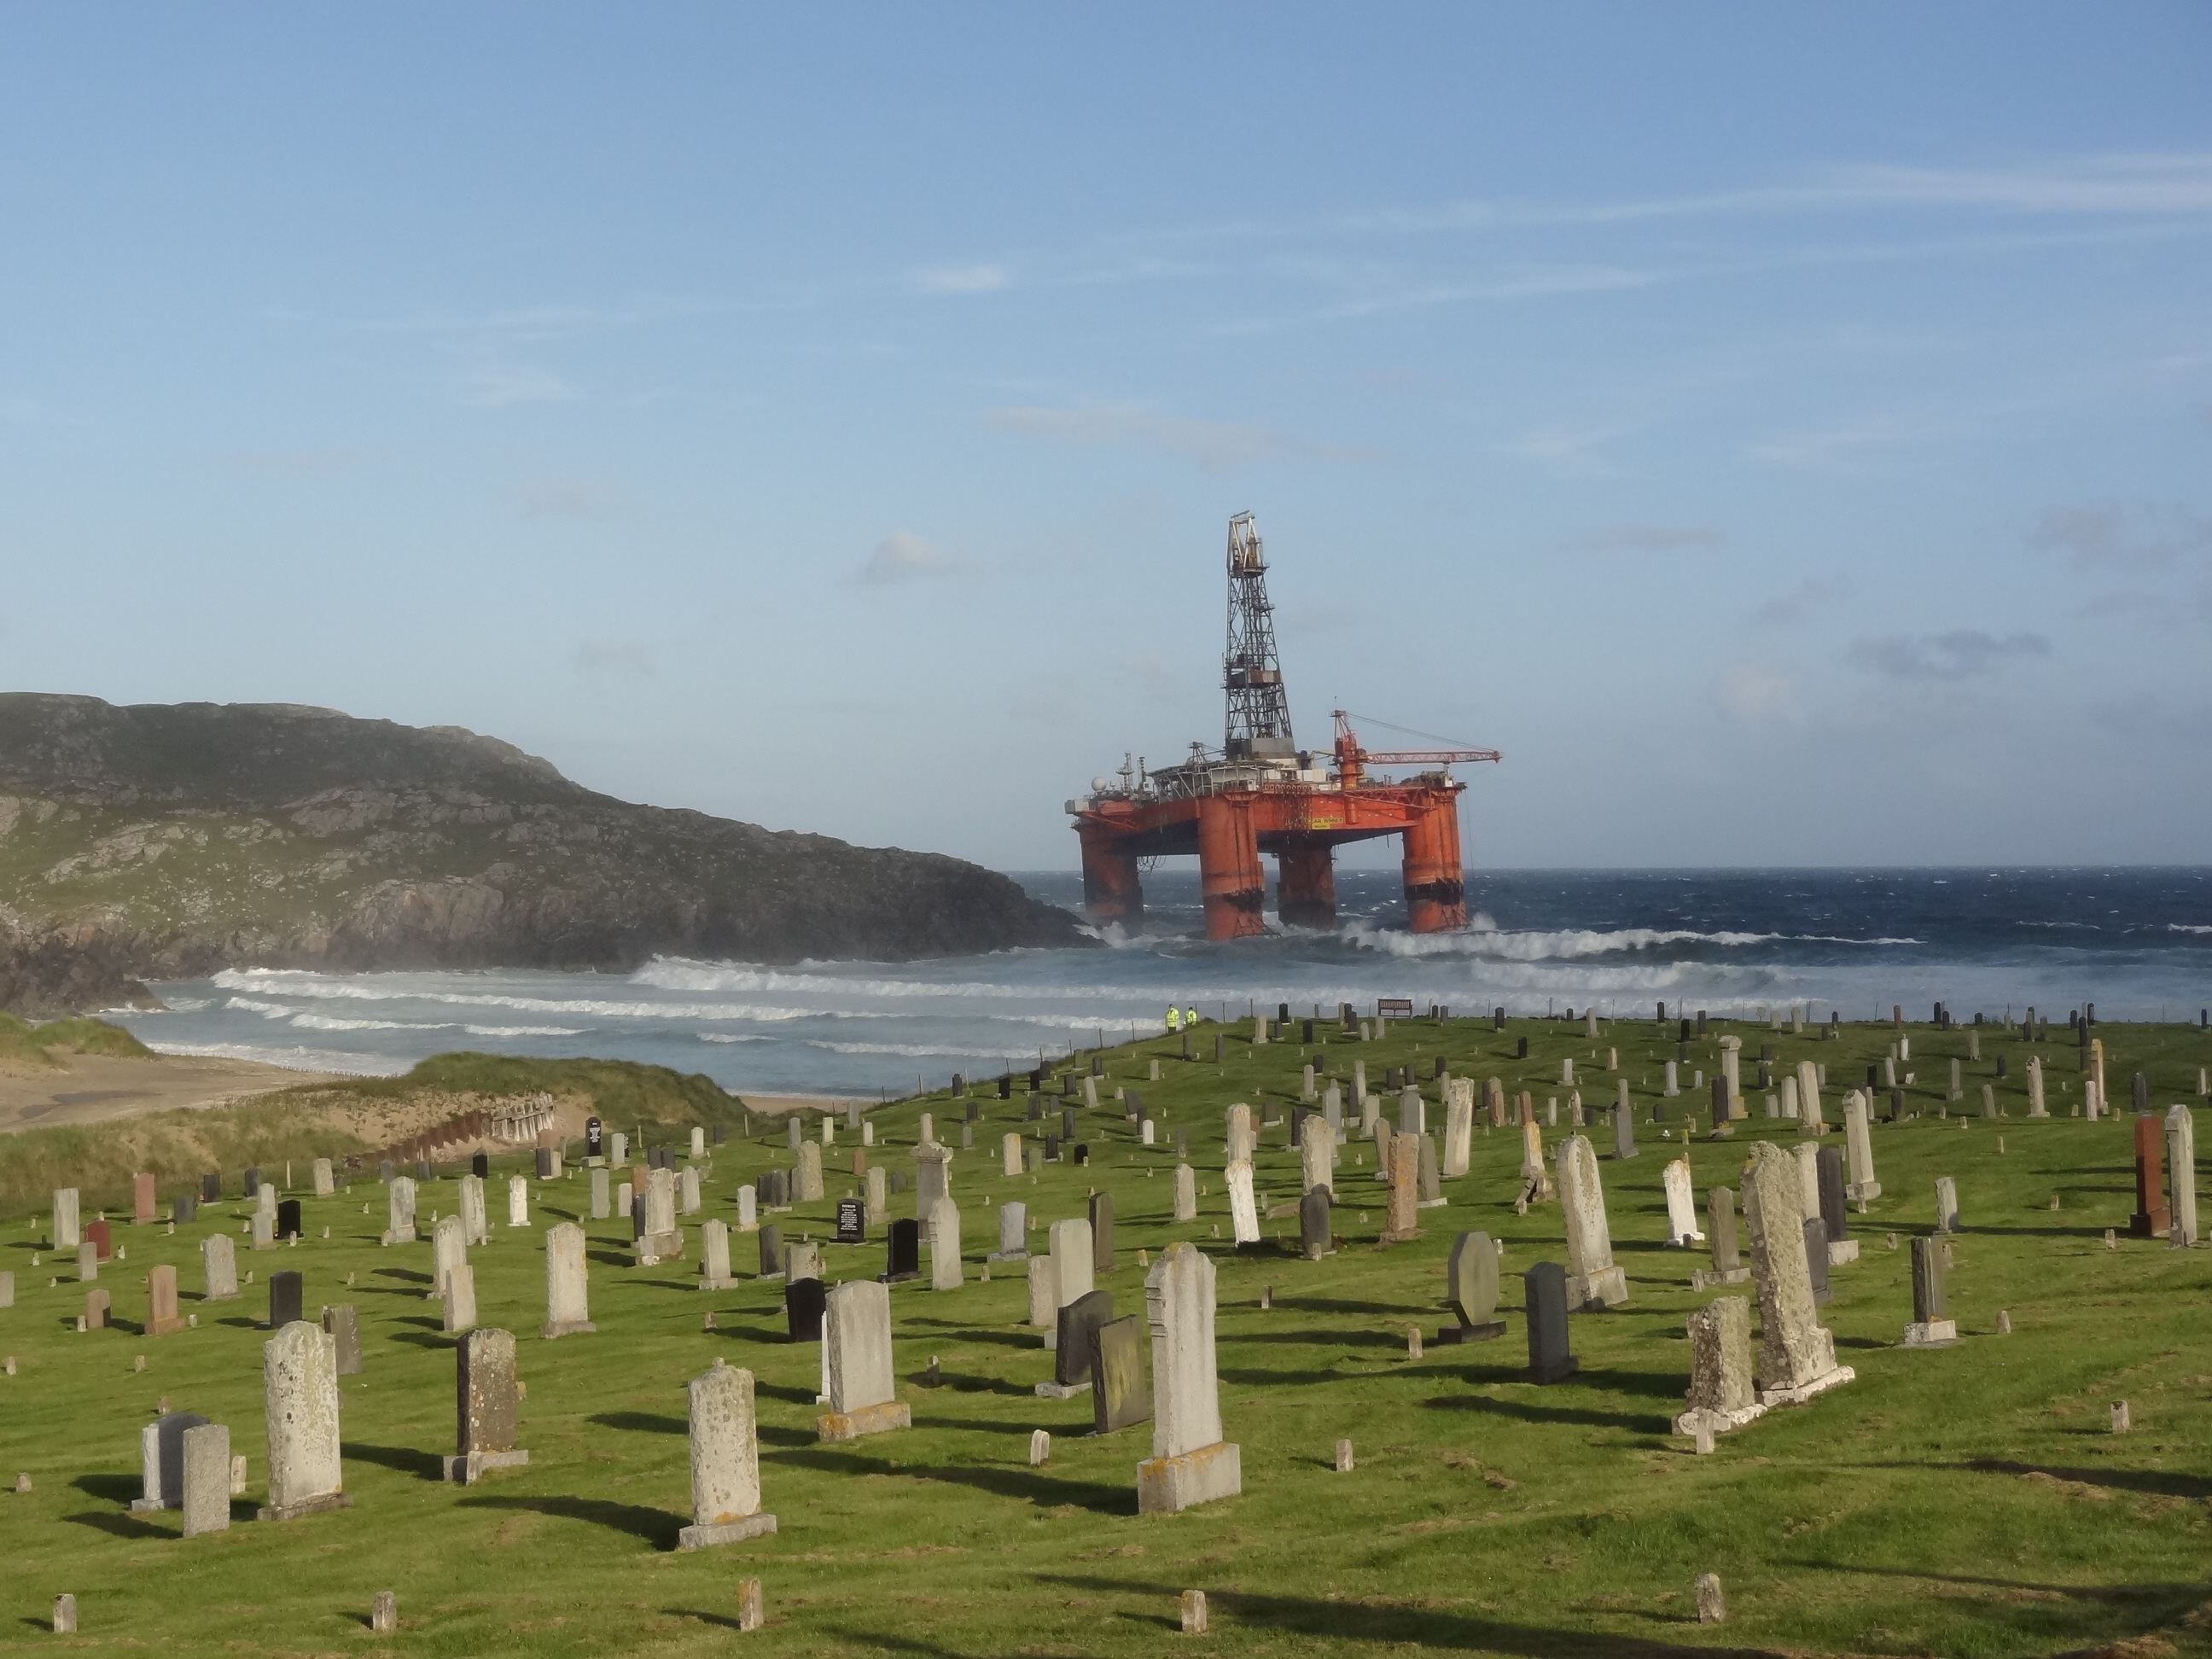 Grounded Transocean rig